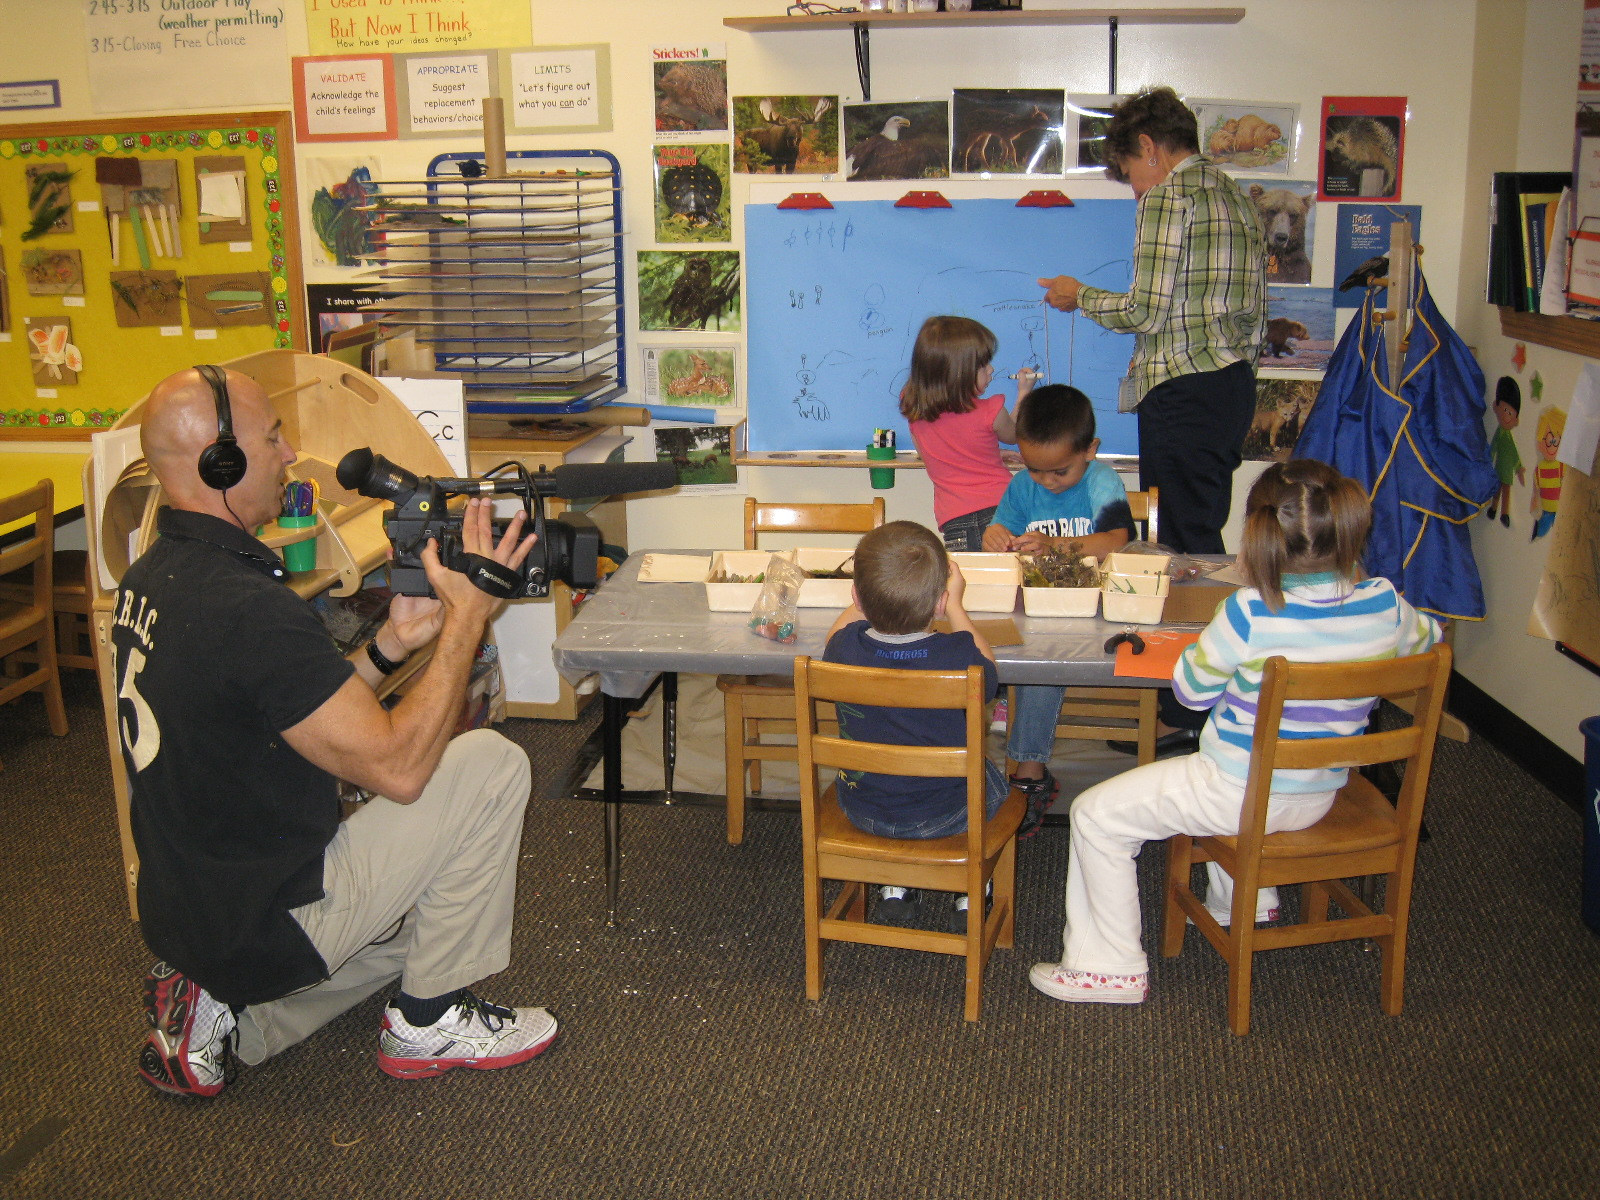 Worksheet Children Learning Site bc3s childrens creative learning center named exemplary site for filming at the at